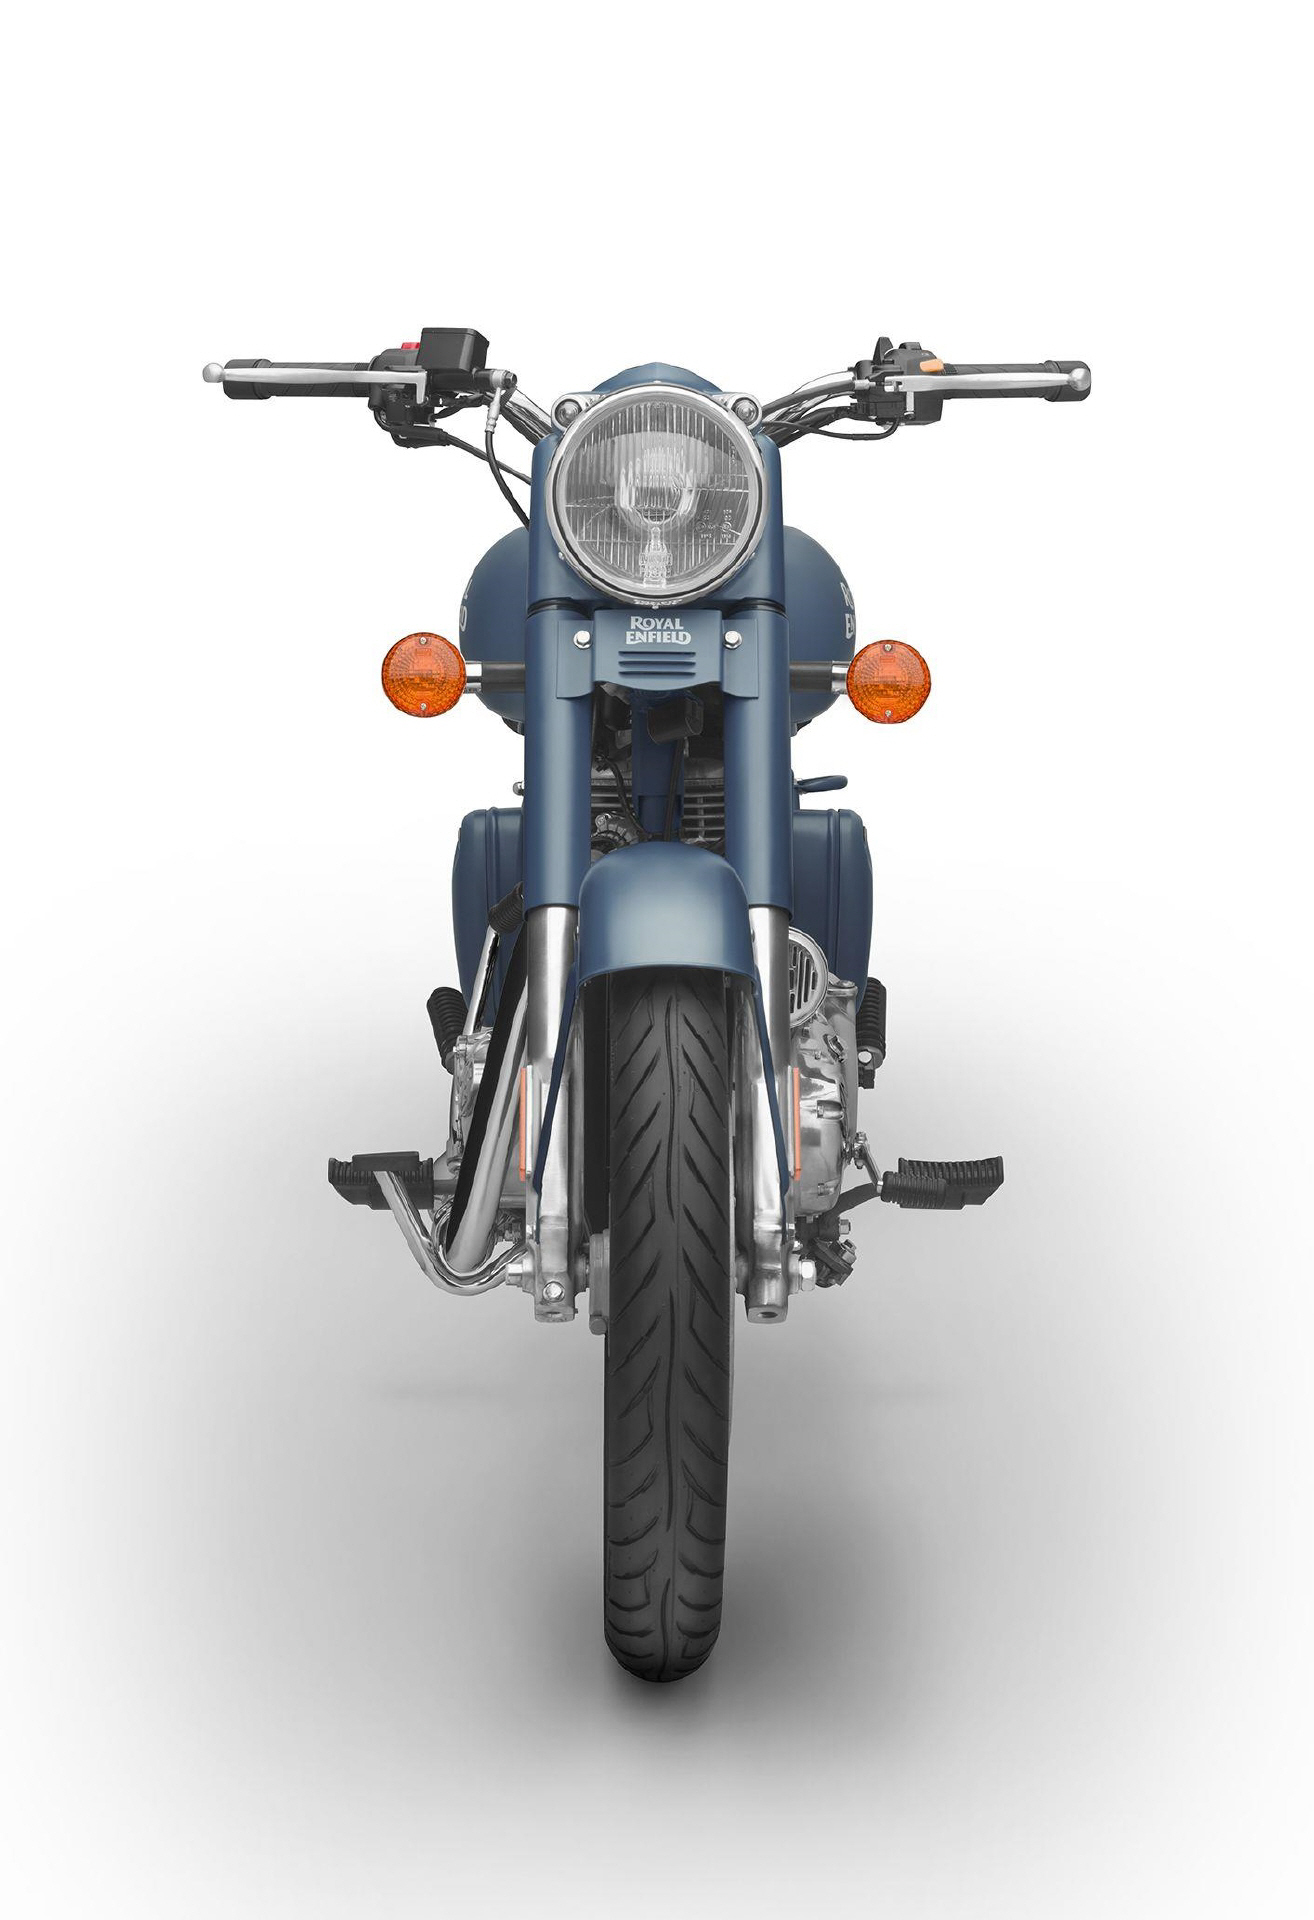 royalenfield_classic_squadronblue_03jpg